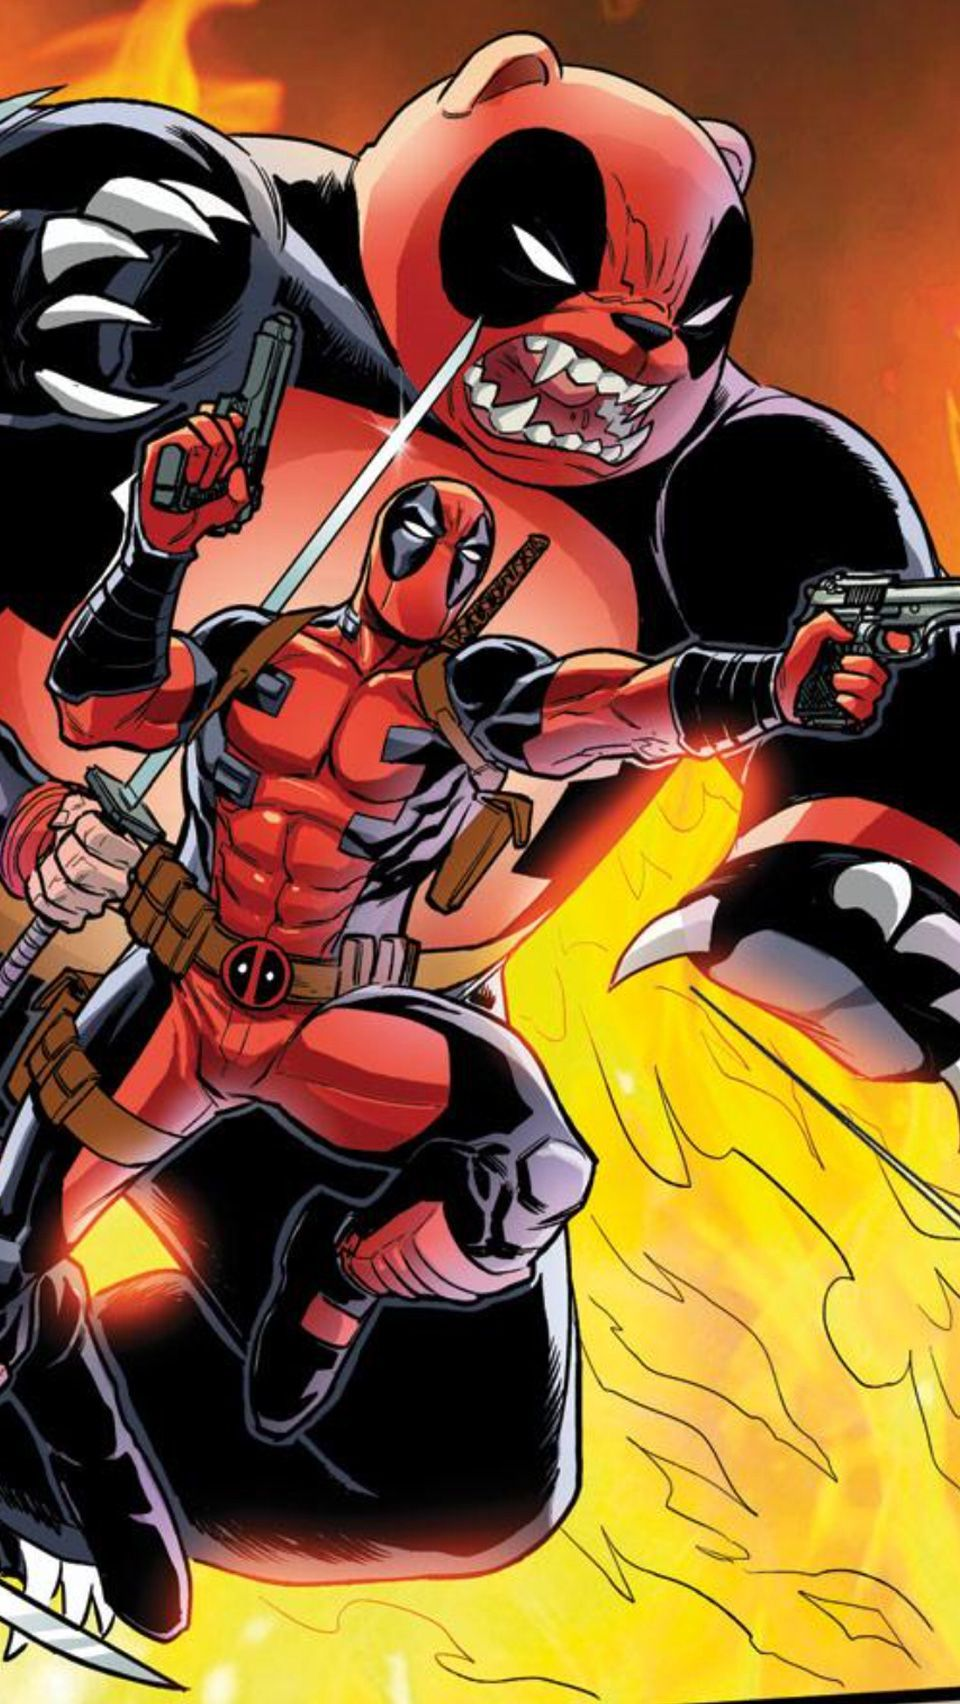 Comic Deadpool Iphone Wallpaper Vsco 2 in 2020